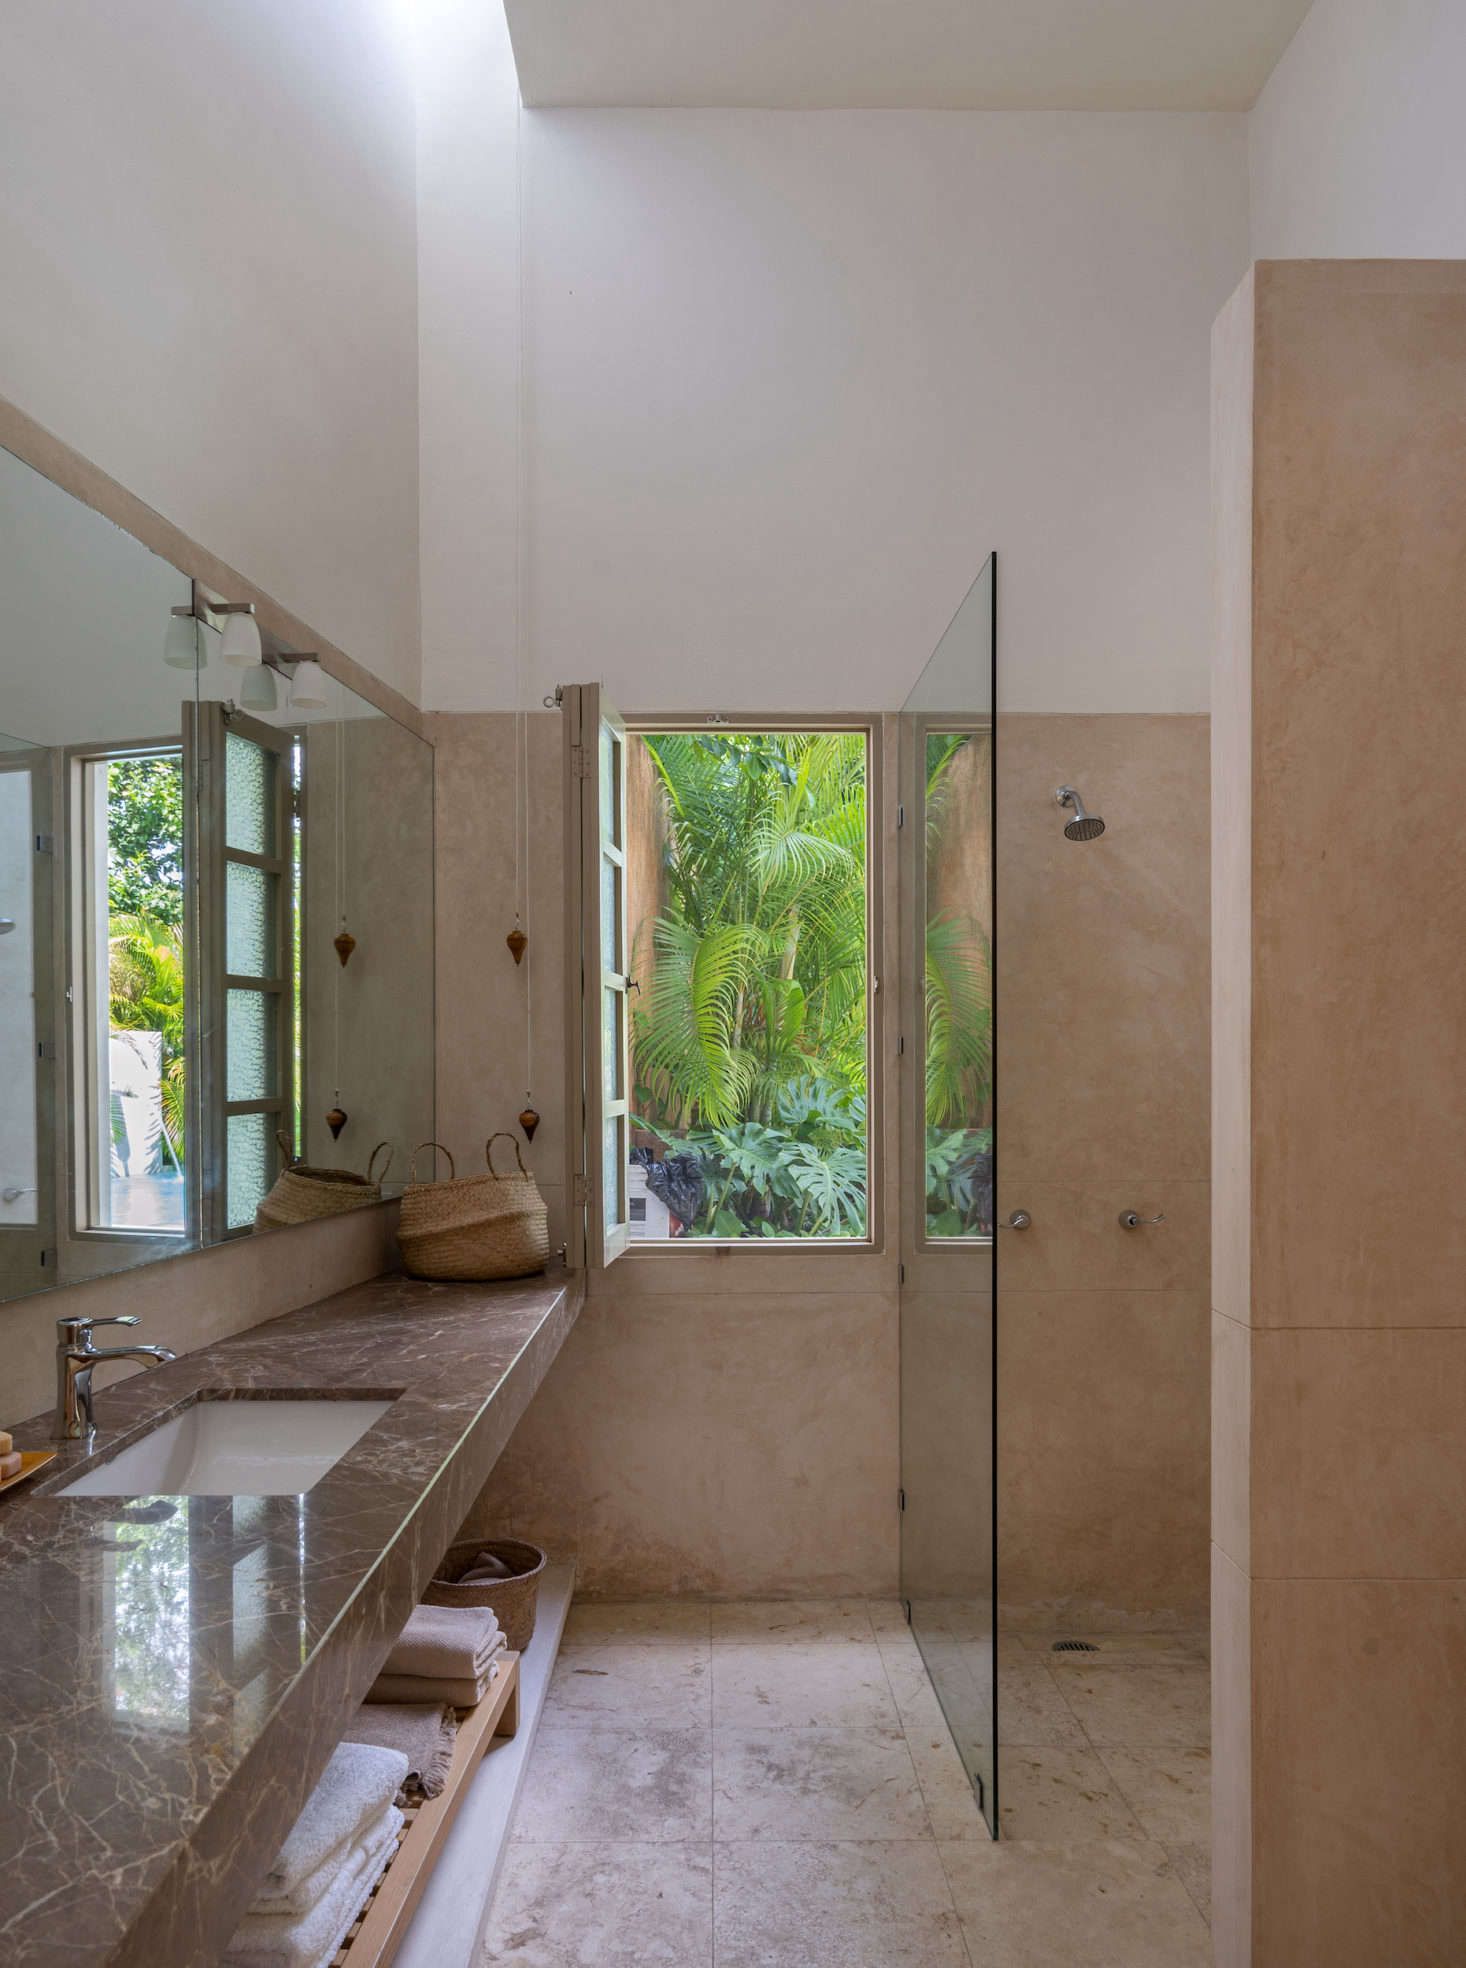 The en suite bathroom features a Brazilian marble counter and a shuttered window that looks out onto the pool.